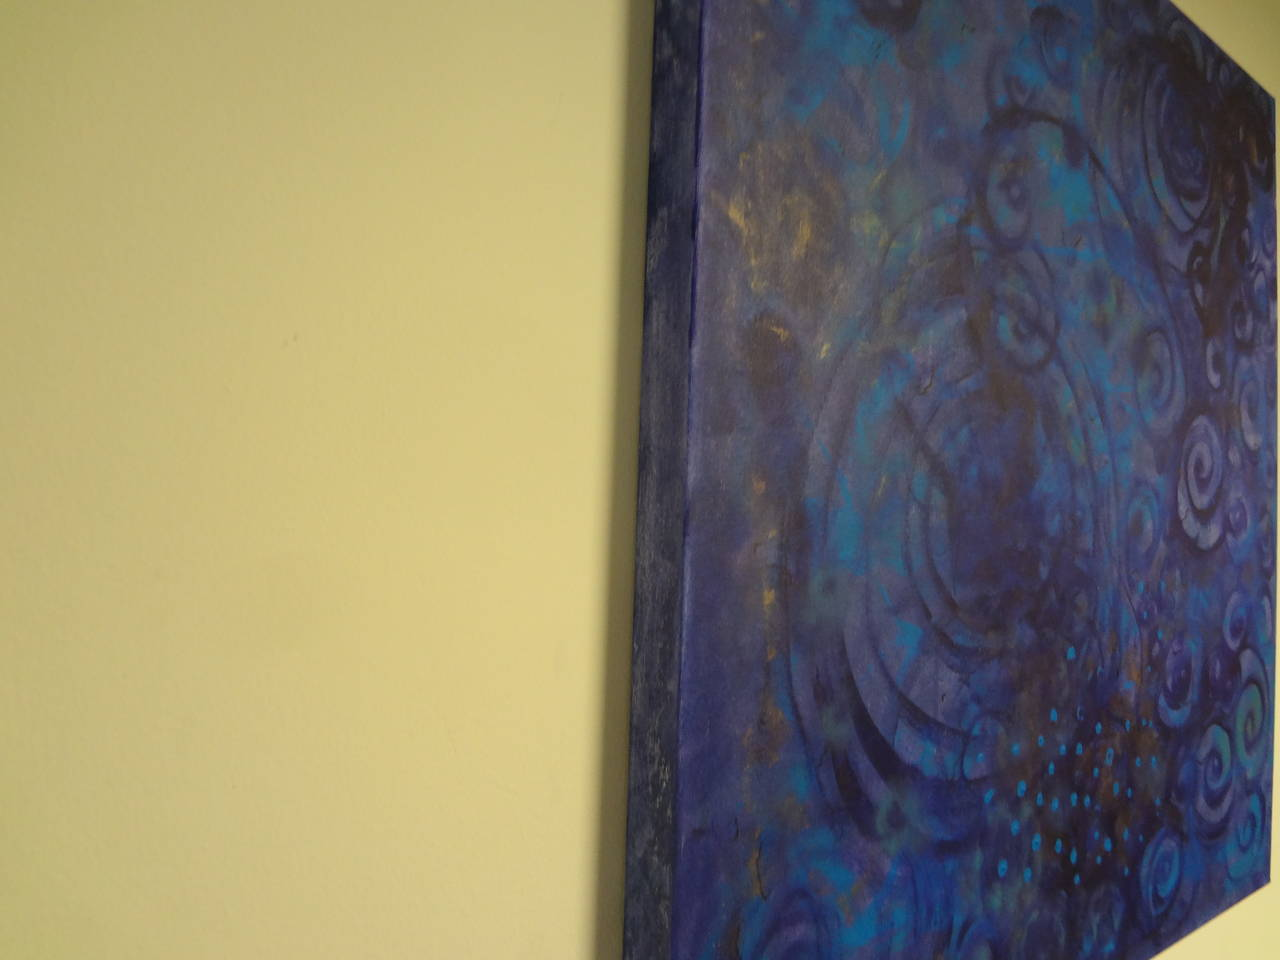 Organic Modern Abstract Acrylic on Canvas by Javier Barrionuevo For Sale